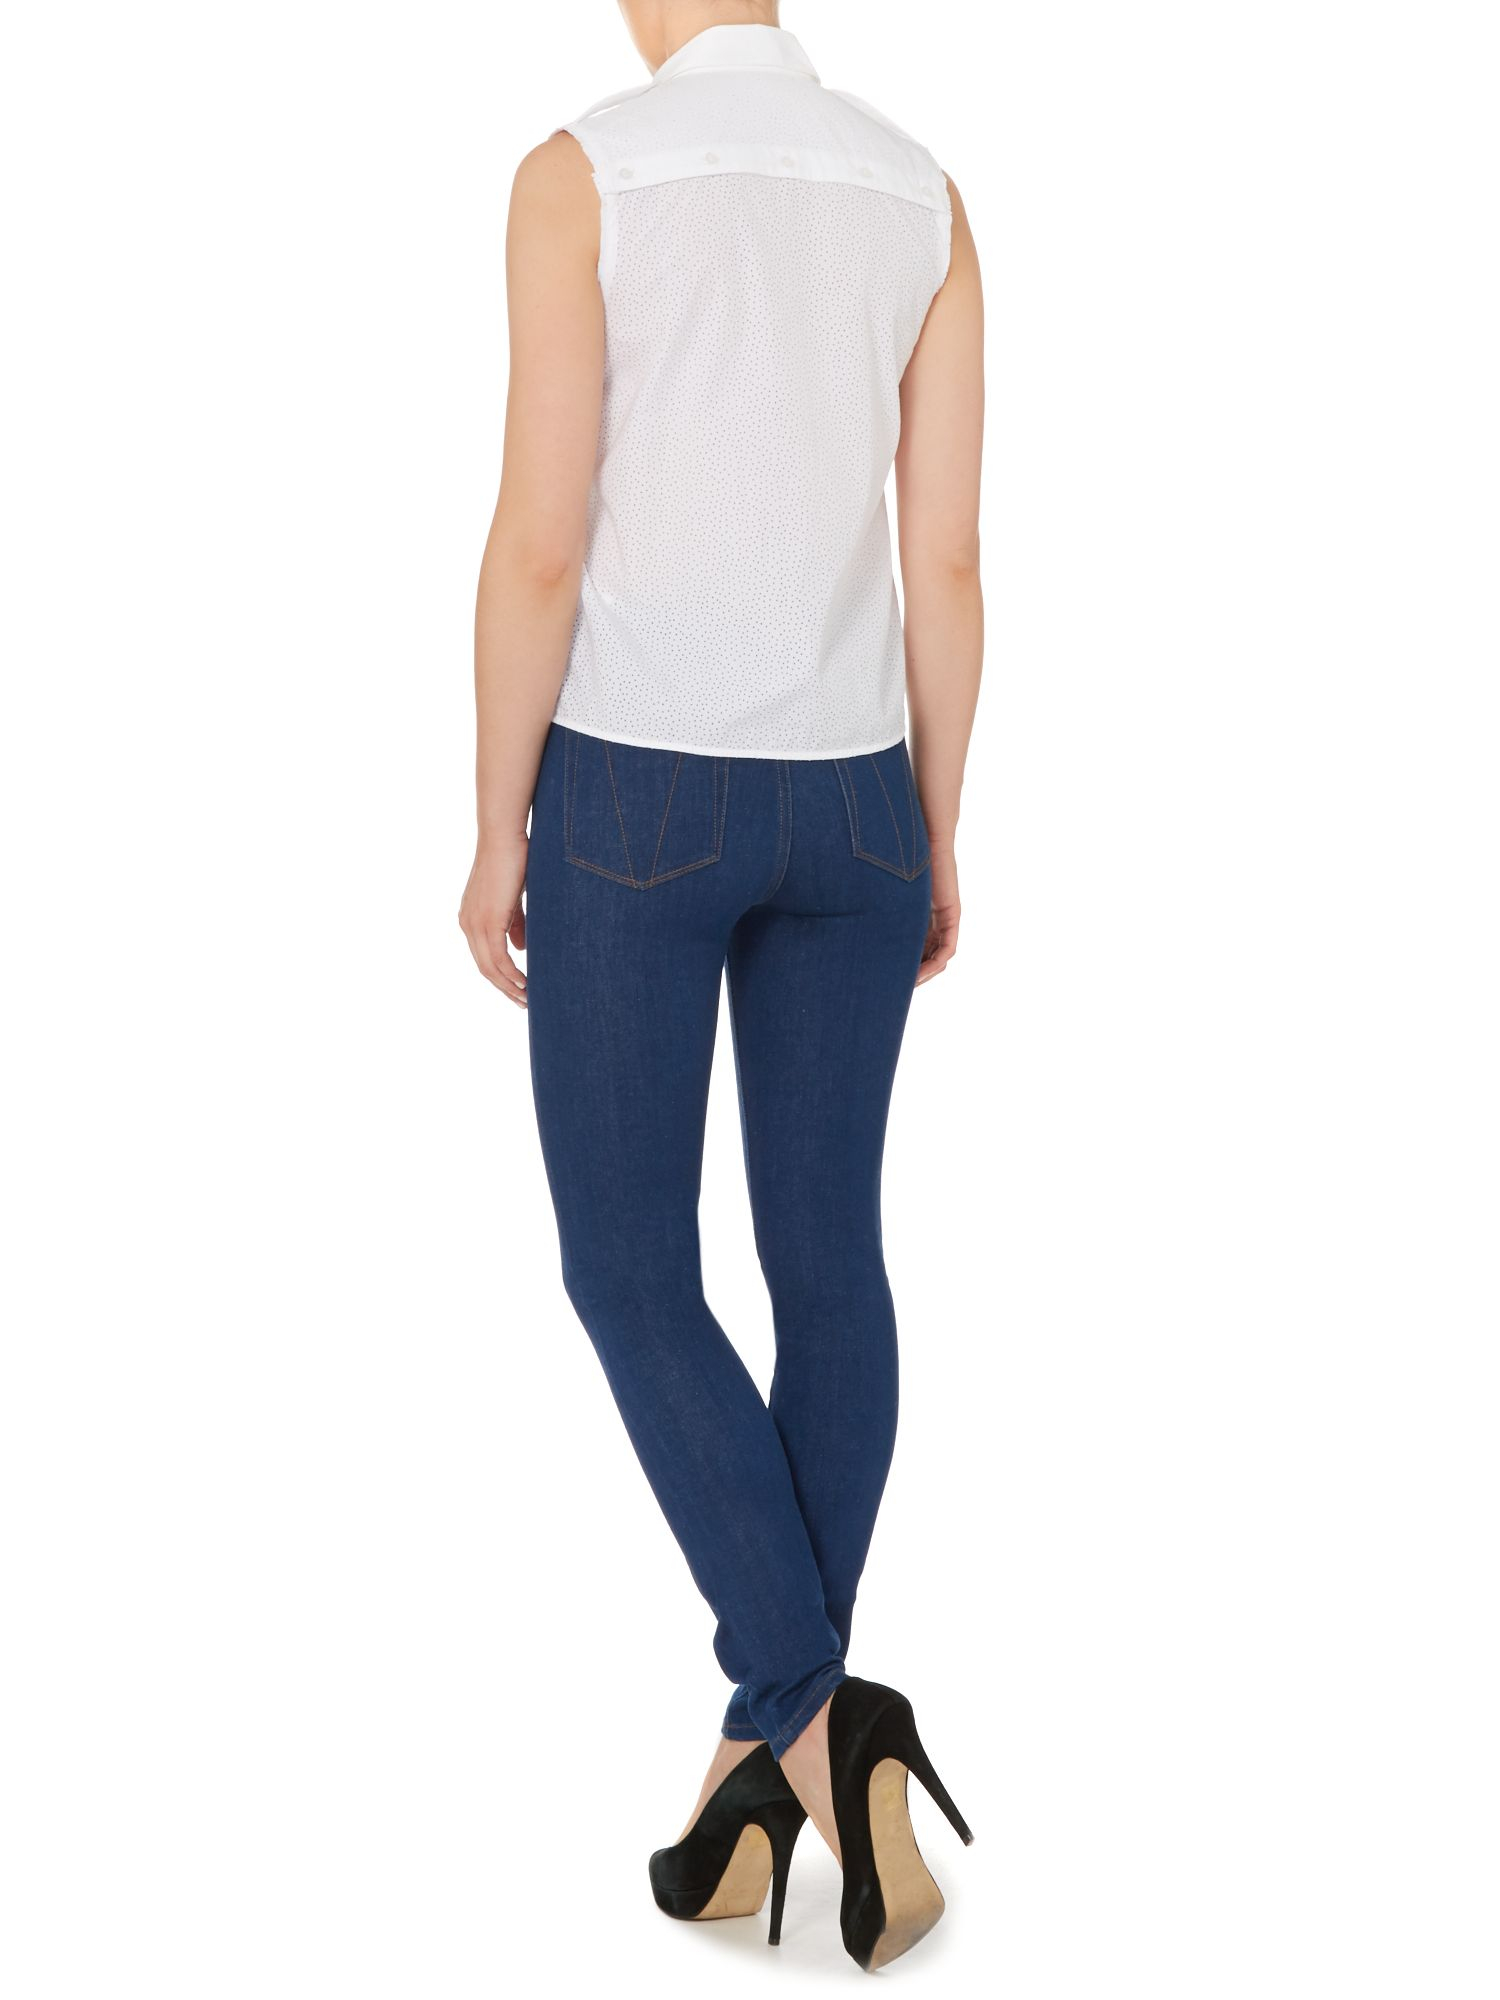 lyst victoria beckham powerhigh skinny jeans in blue 17 in blue. Black Bedroom Furniture Sets. Home Design Ideas